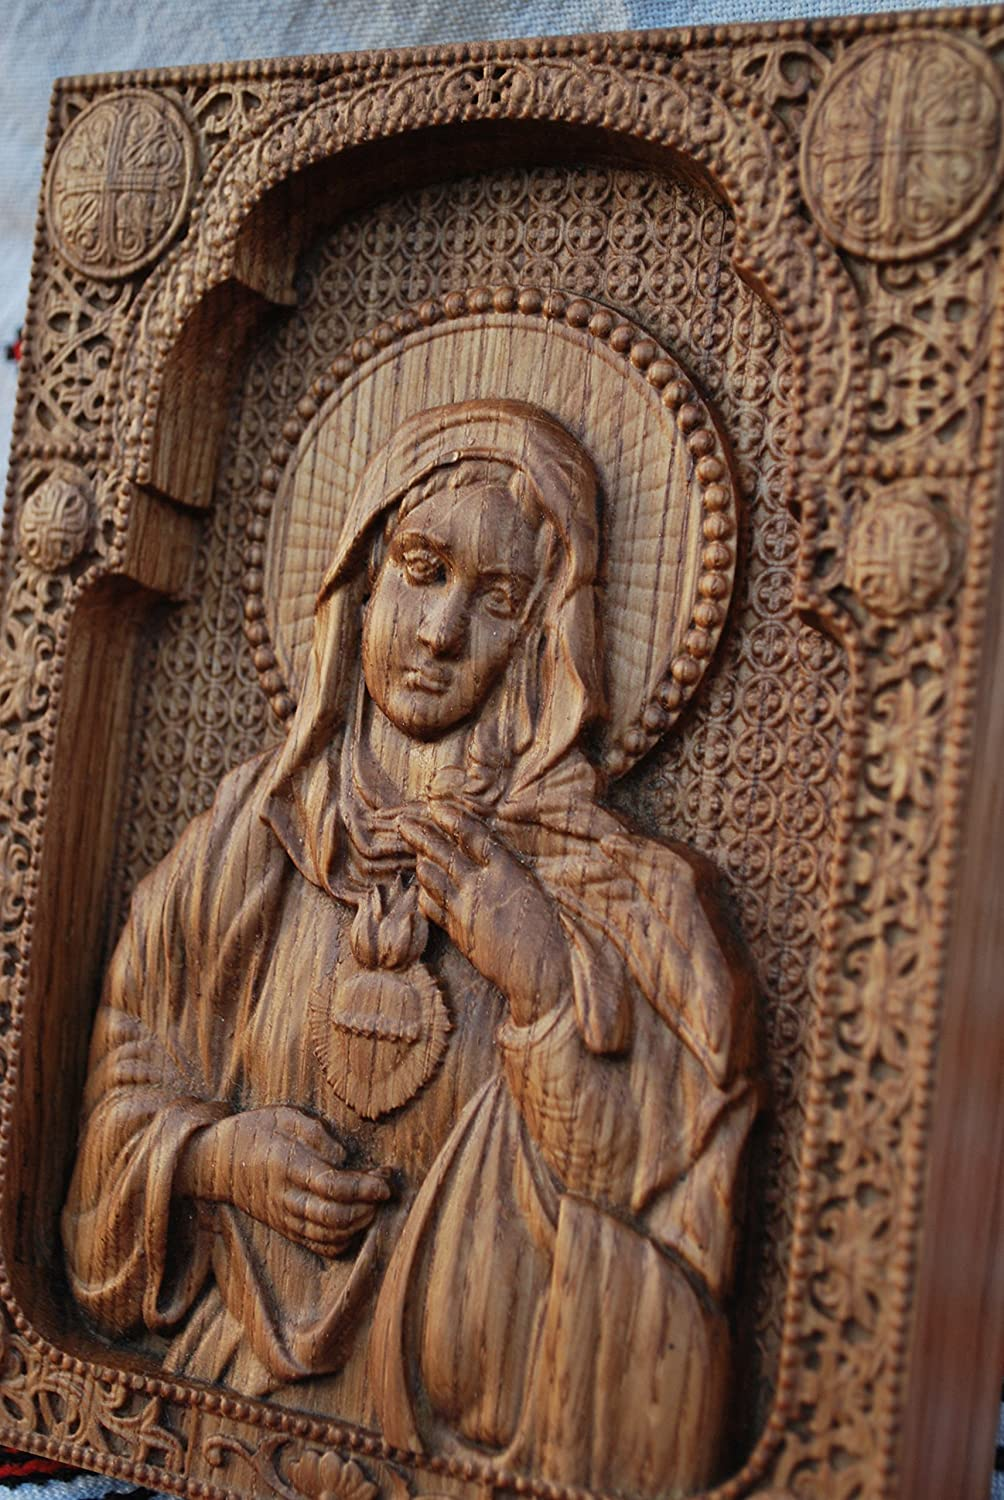 Immaculate Heart of Mary Christian Gift Virgin Mary Wall Art Wood Carving Religious Icon Home Decor from Artworkshop Tree of life FREE SHIPPING FREE ENGRAVING